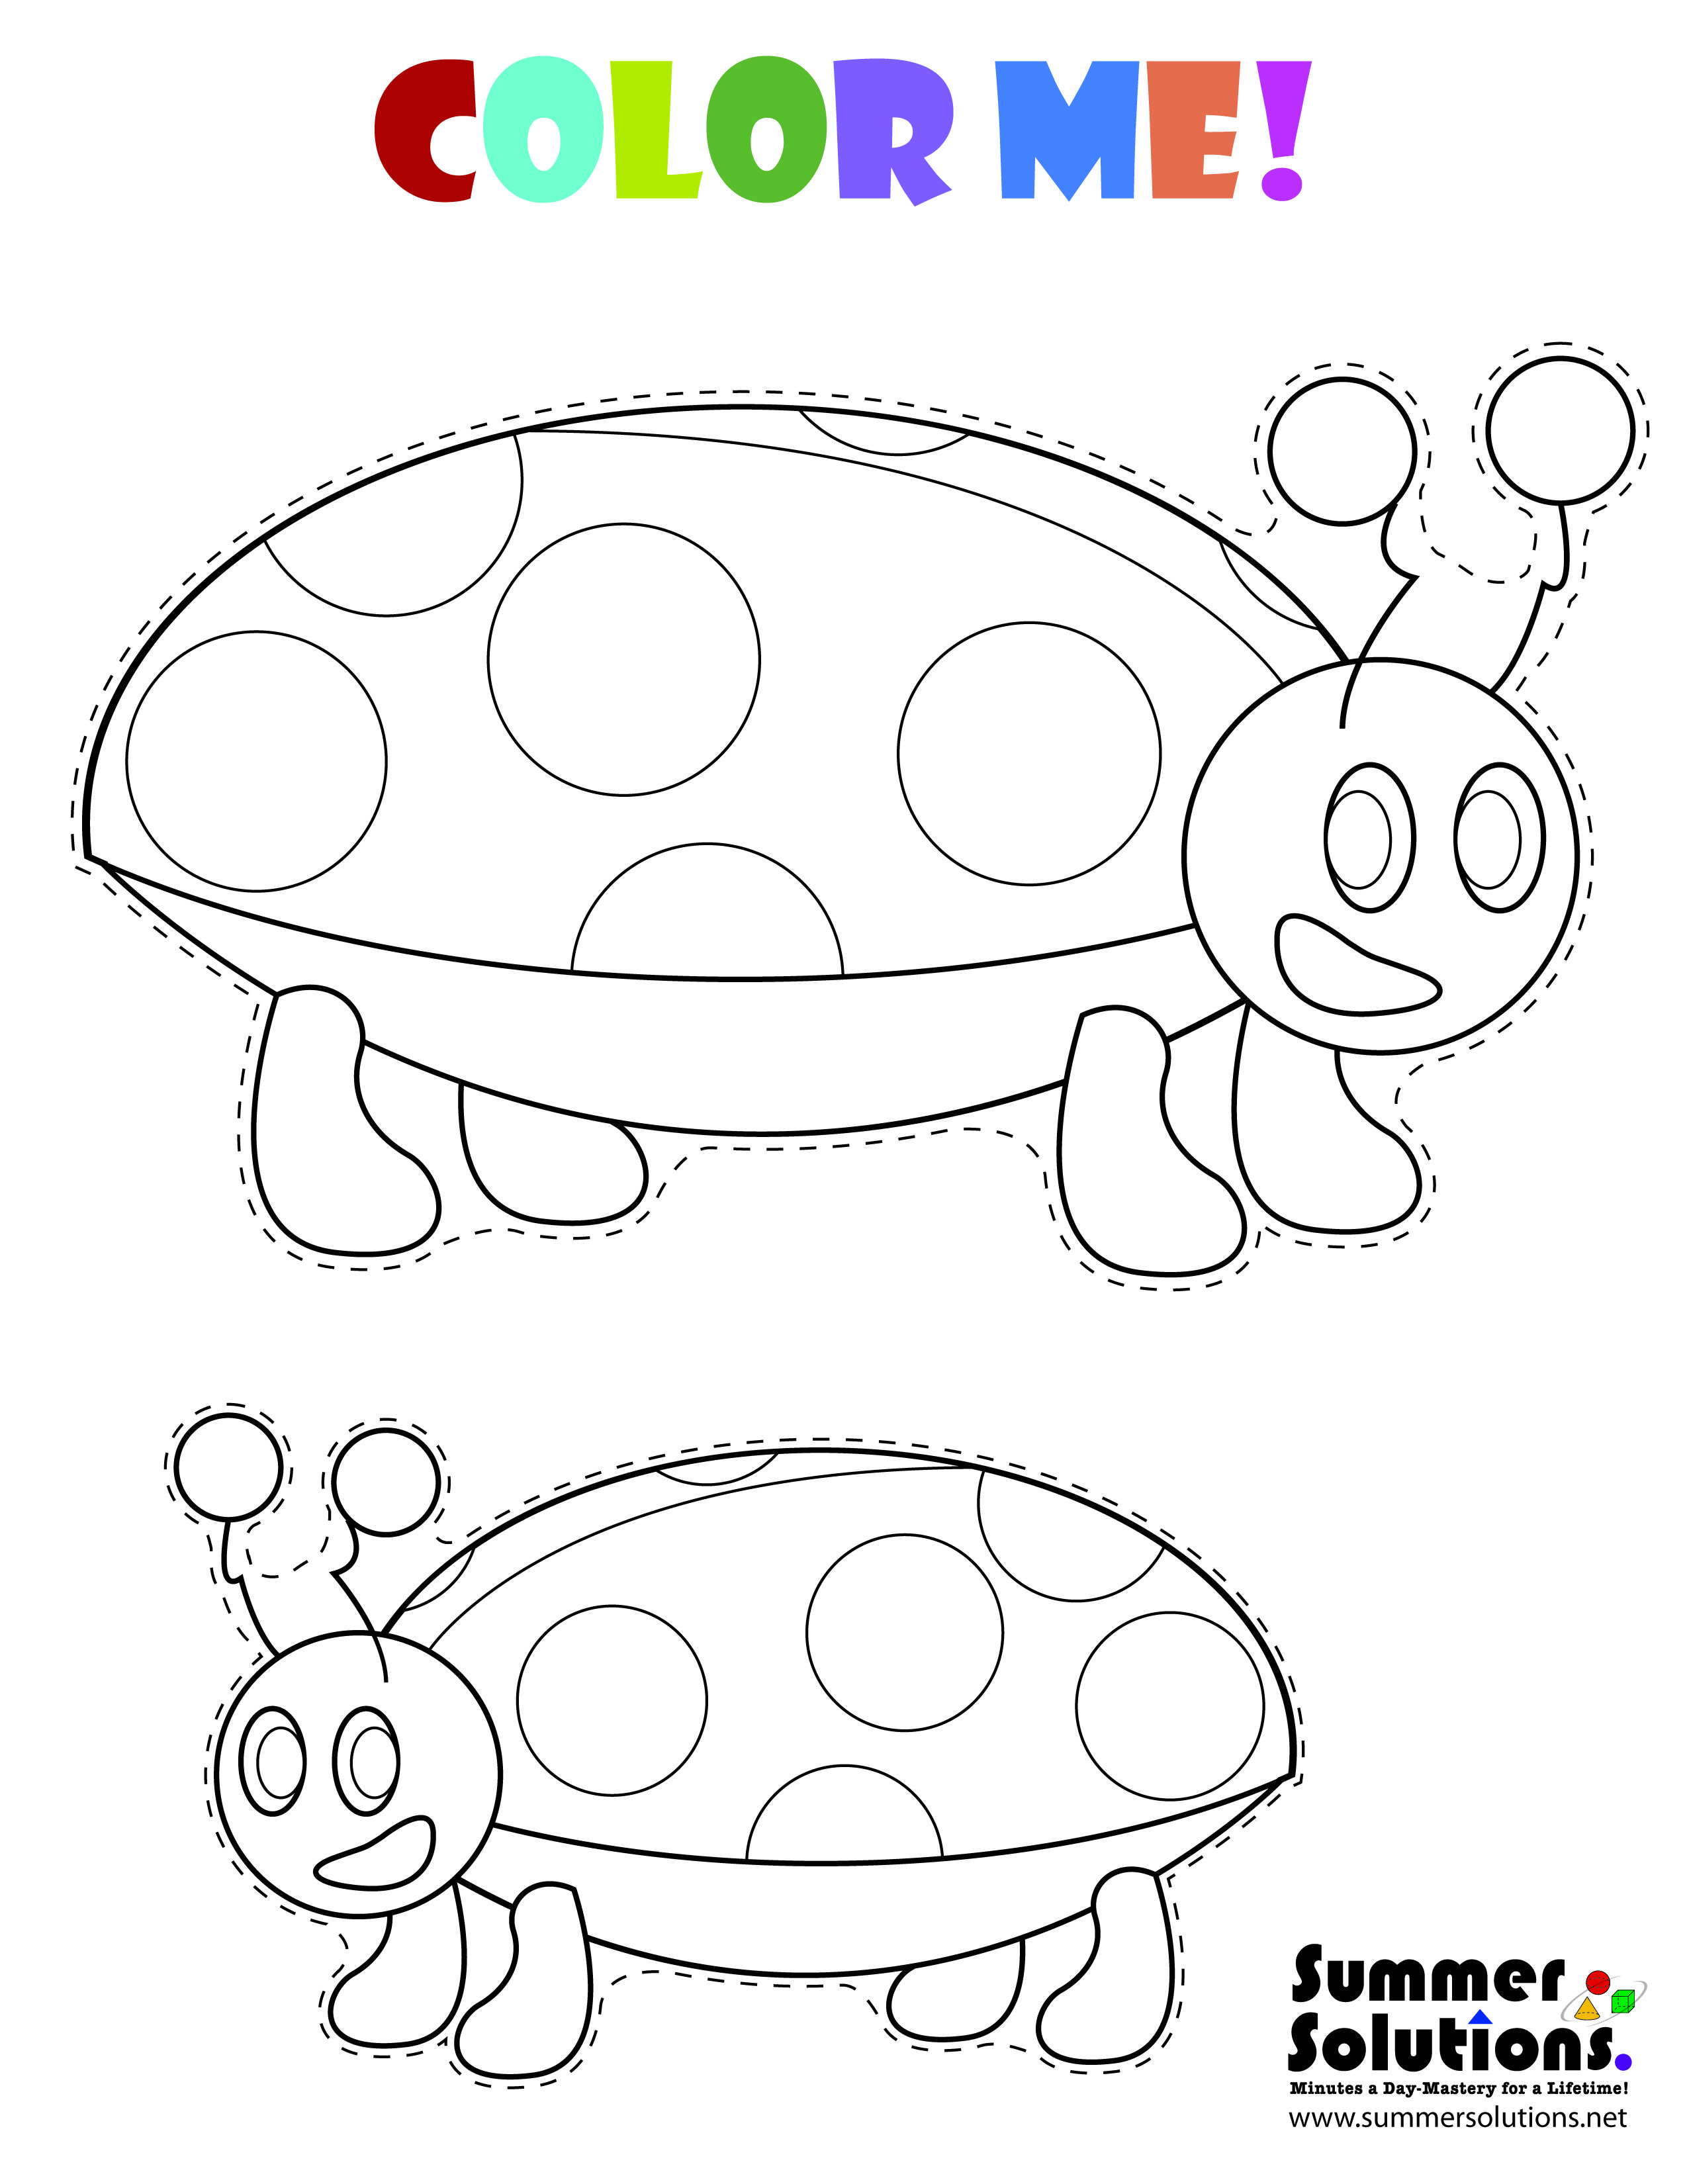 A Ladybug Coloring Page Share With Your Kids Or Enjoy It